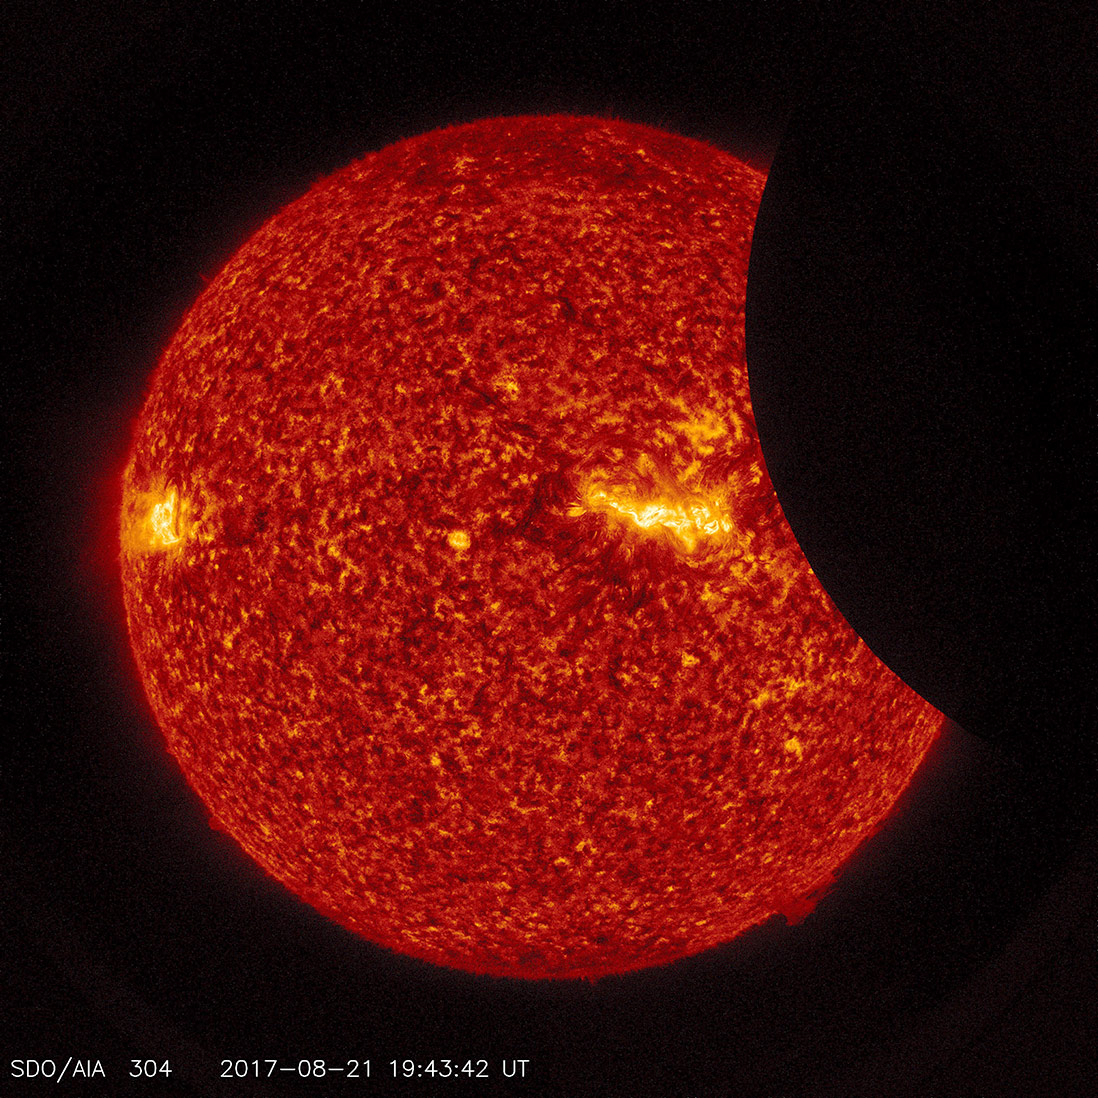 Image of the Moon transiting across the Sun, using a blend of 171 ångstrom extreme ultraviolet light and visible light imagery from SDO from August 21, 2017. Credit: NASA/SDO